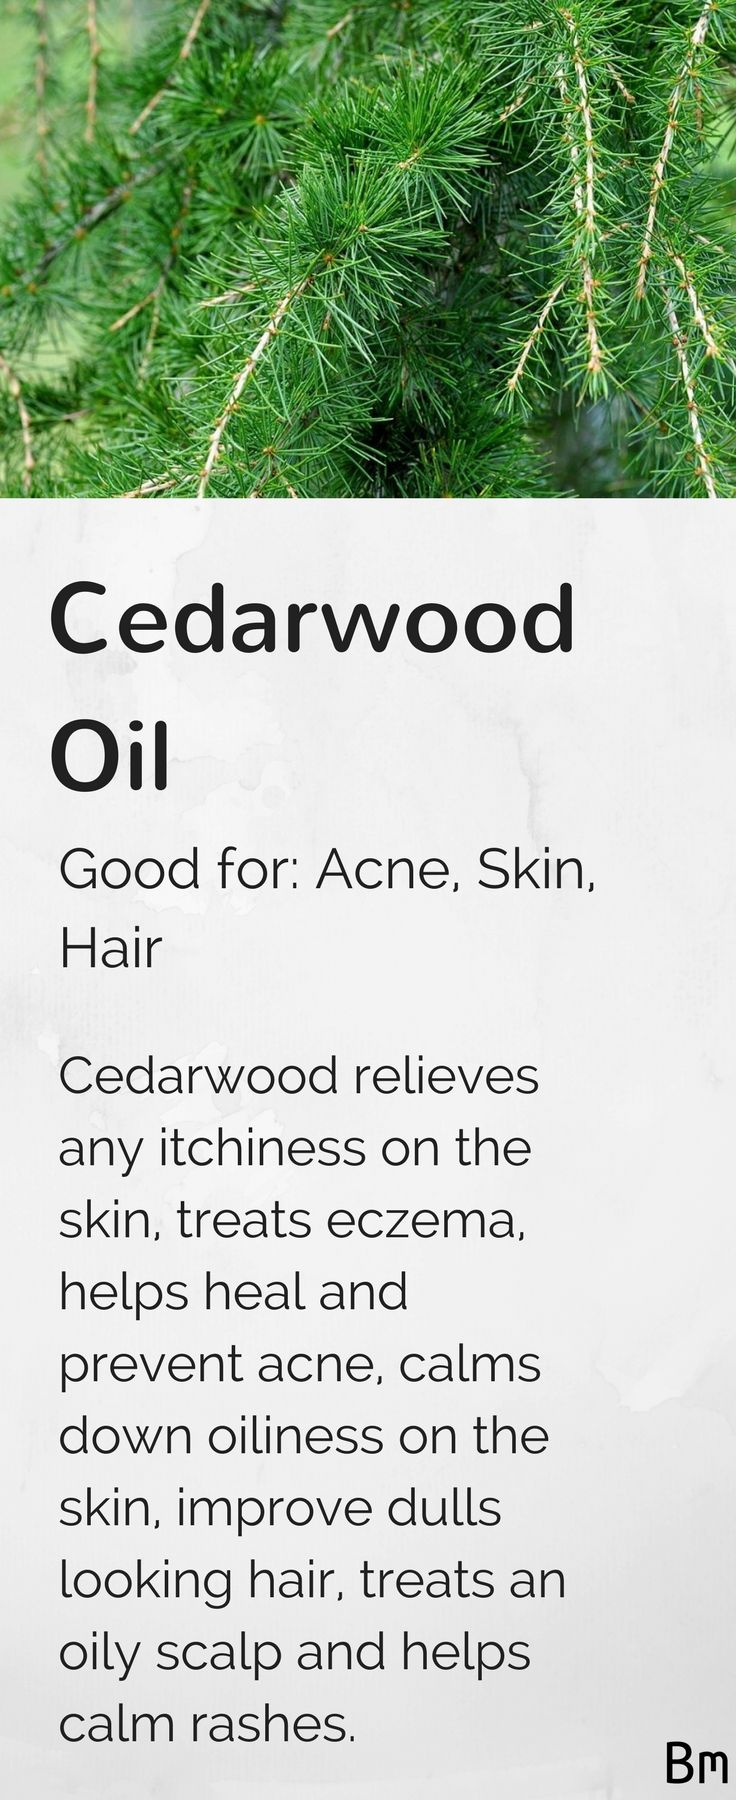 Cedarwood essential oil relieves itchiness on the skin, treats eczema, heals acne, calms oiliness on the skin, improves dull looking hair and helps calm rashes. But, remember to dilute your essential oils before using them! Either two drops in a tablespoon of coconut oil, jojoba oil or argan oil, or maybe even try a tablespoon of body lotion. Click the image to learn more about essential oils!